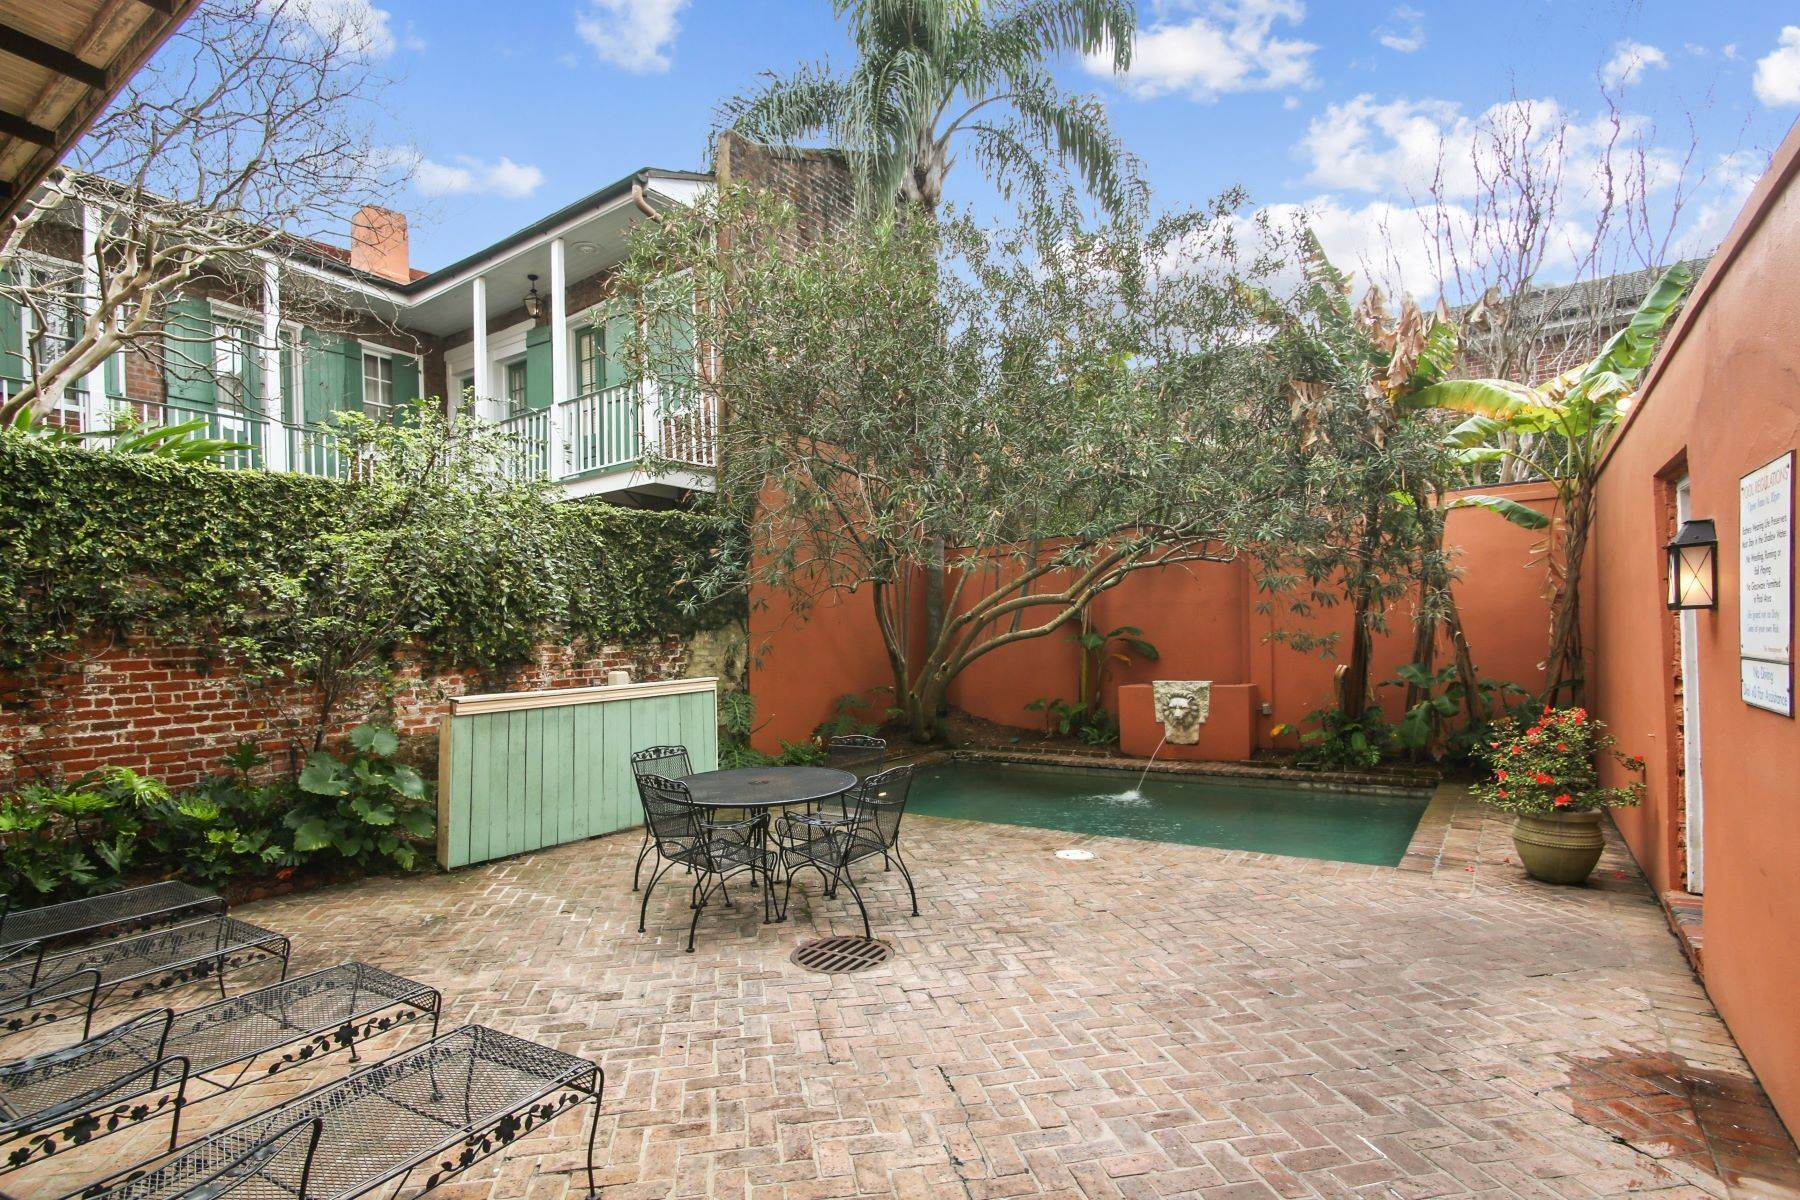 5. Condominiums for Sale at 1040 Chartres Street, C6 1040 Chartres St, C6 New Orleans, Louisiana 70116 United States